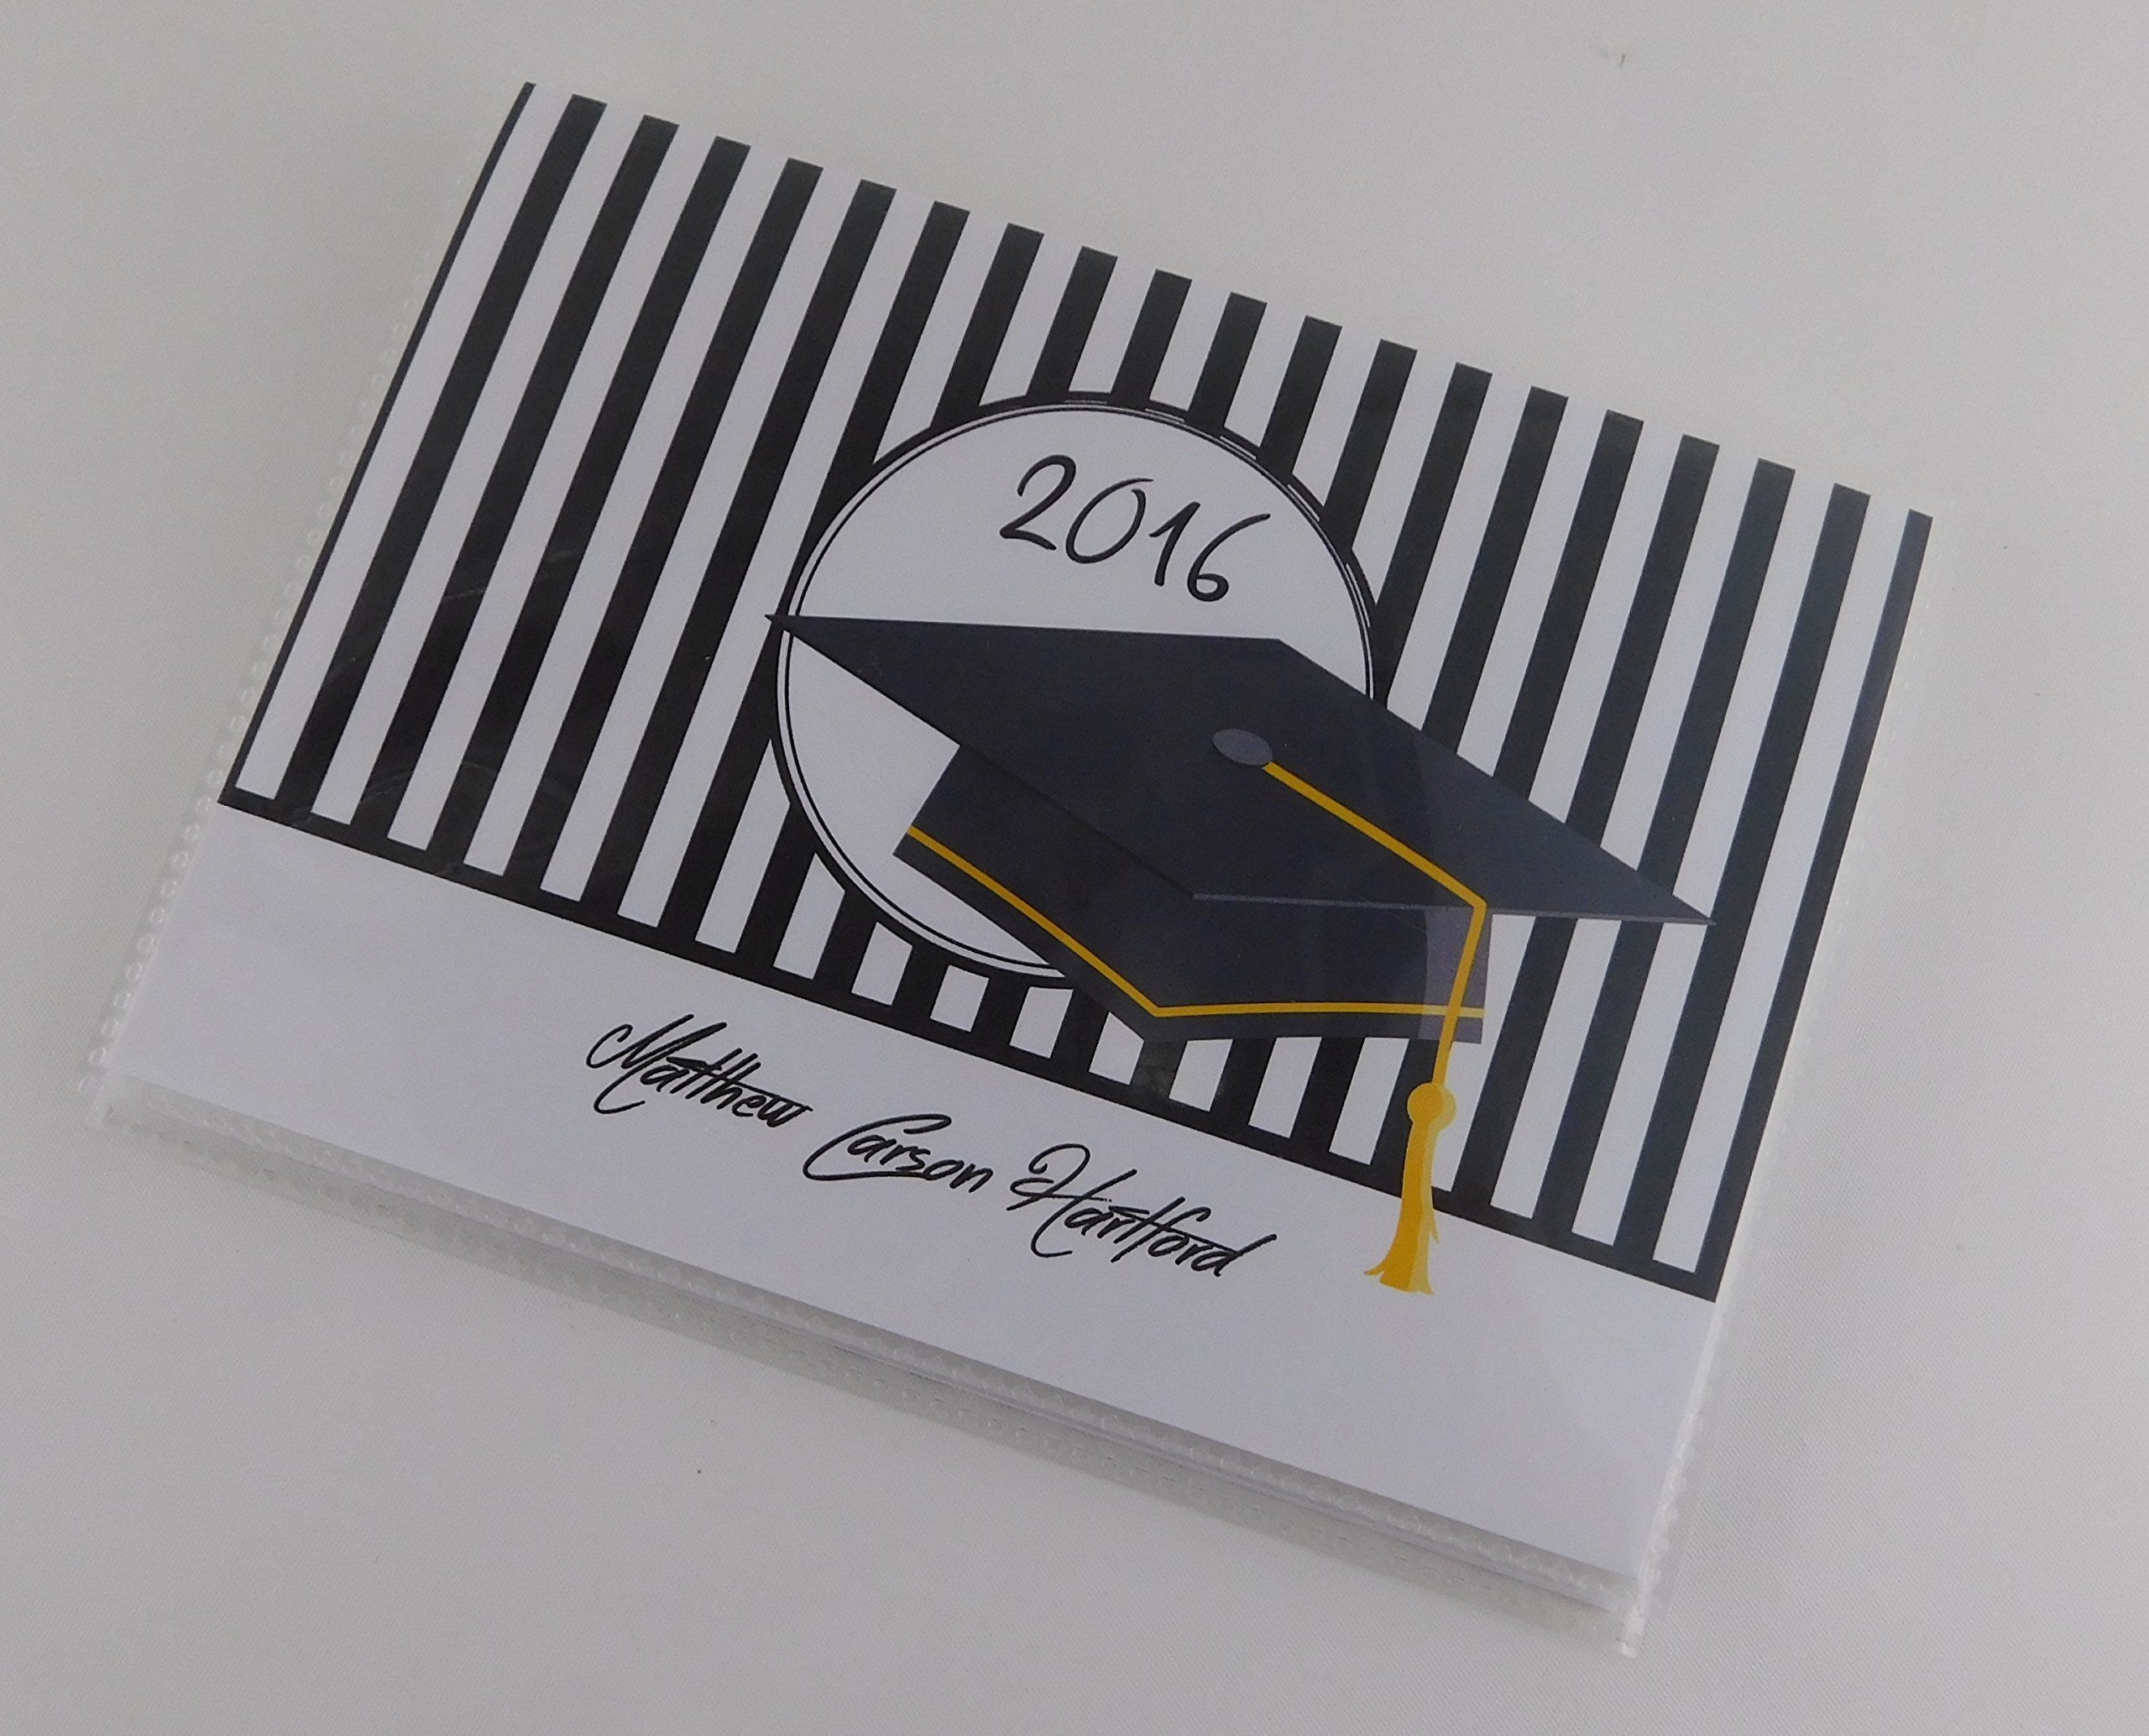 Graduation Gift Graduate Photo Album IA#622 4x6 or 5x7 Picture High School College Graduation Gift Senior